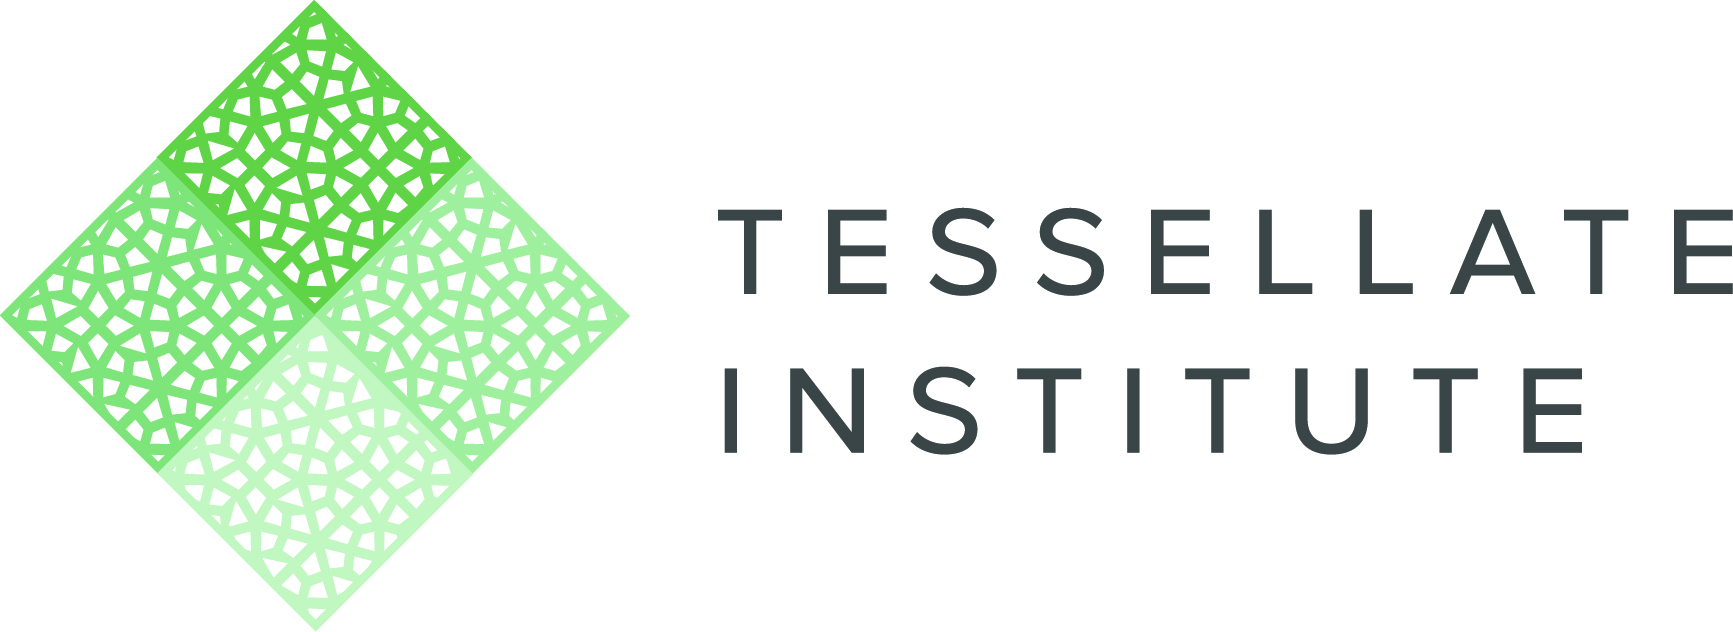 The Tessellate Institute